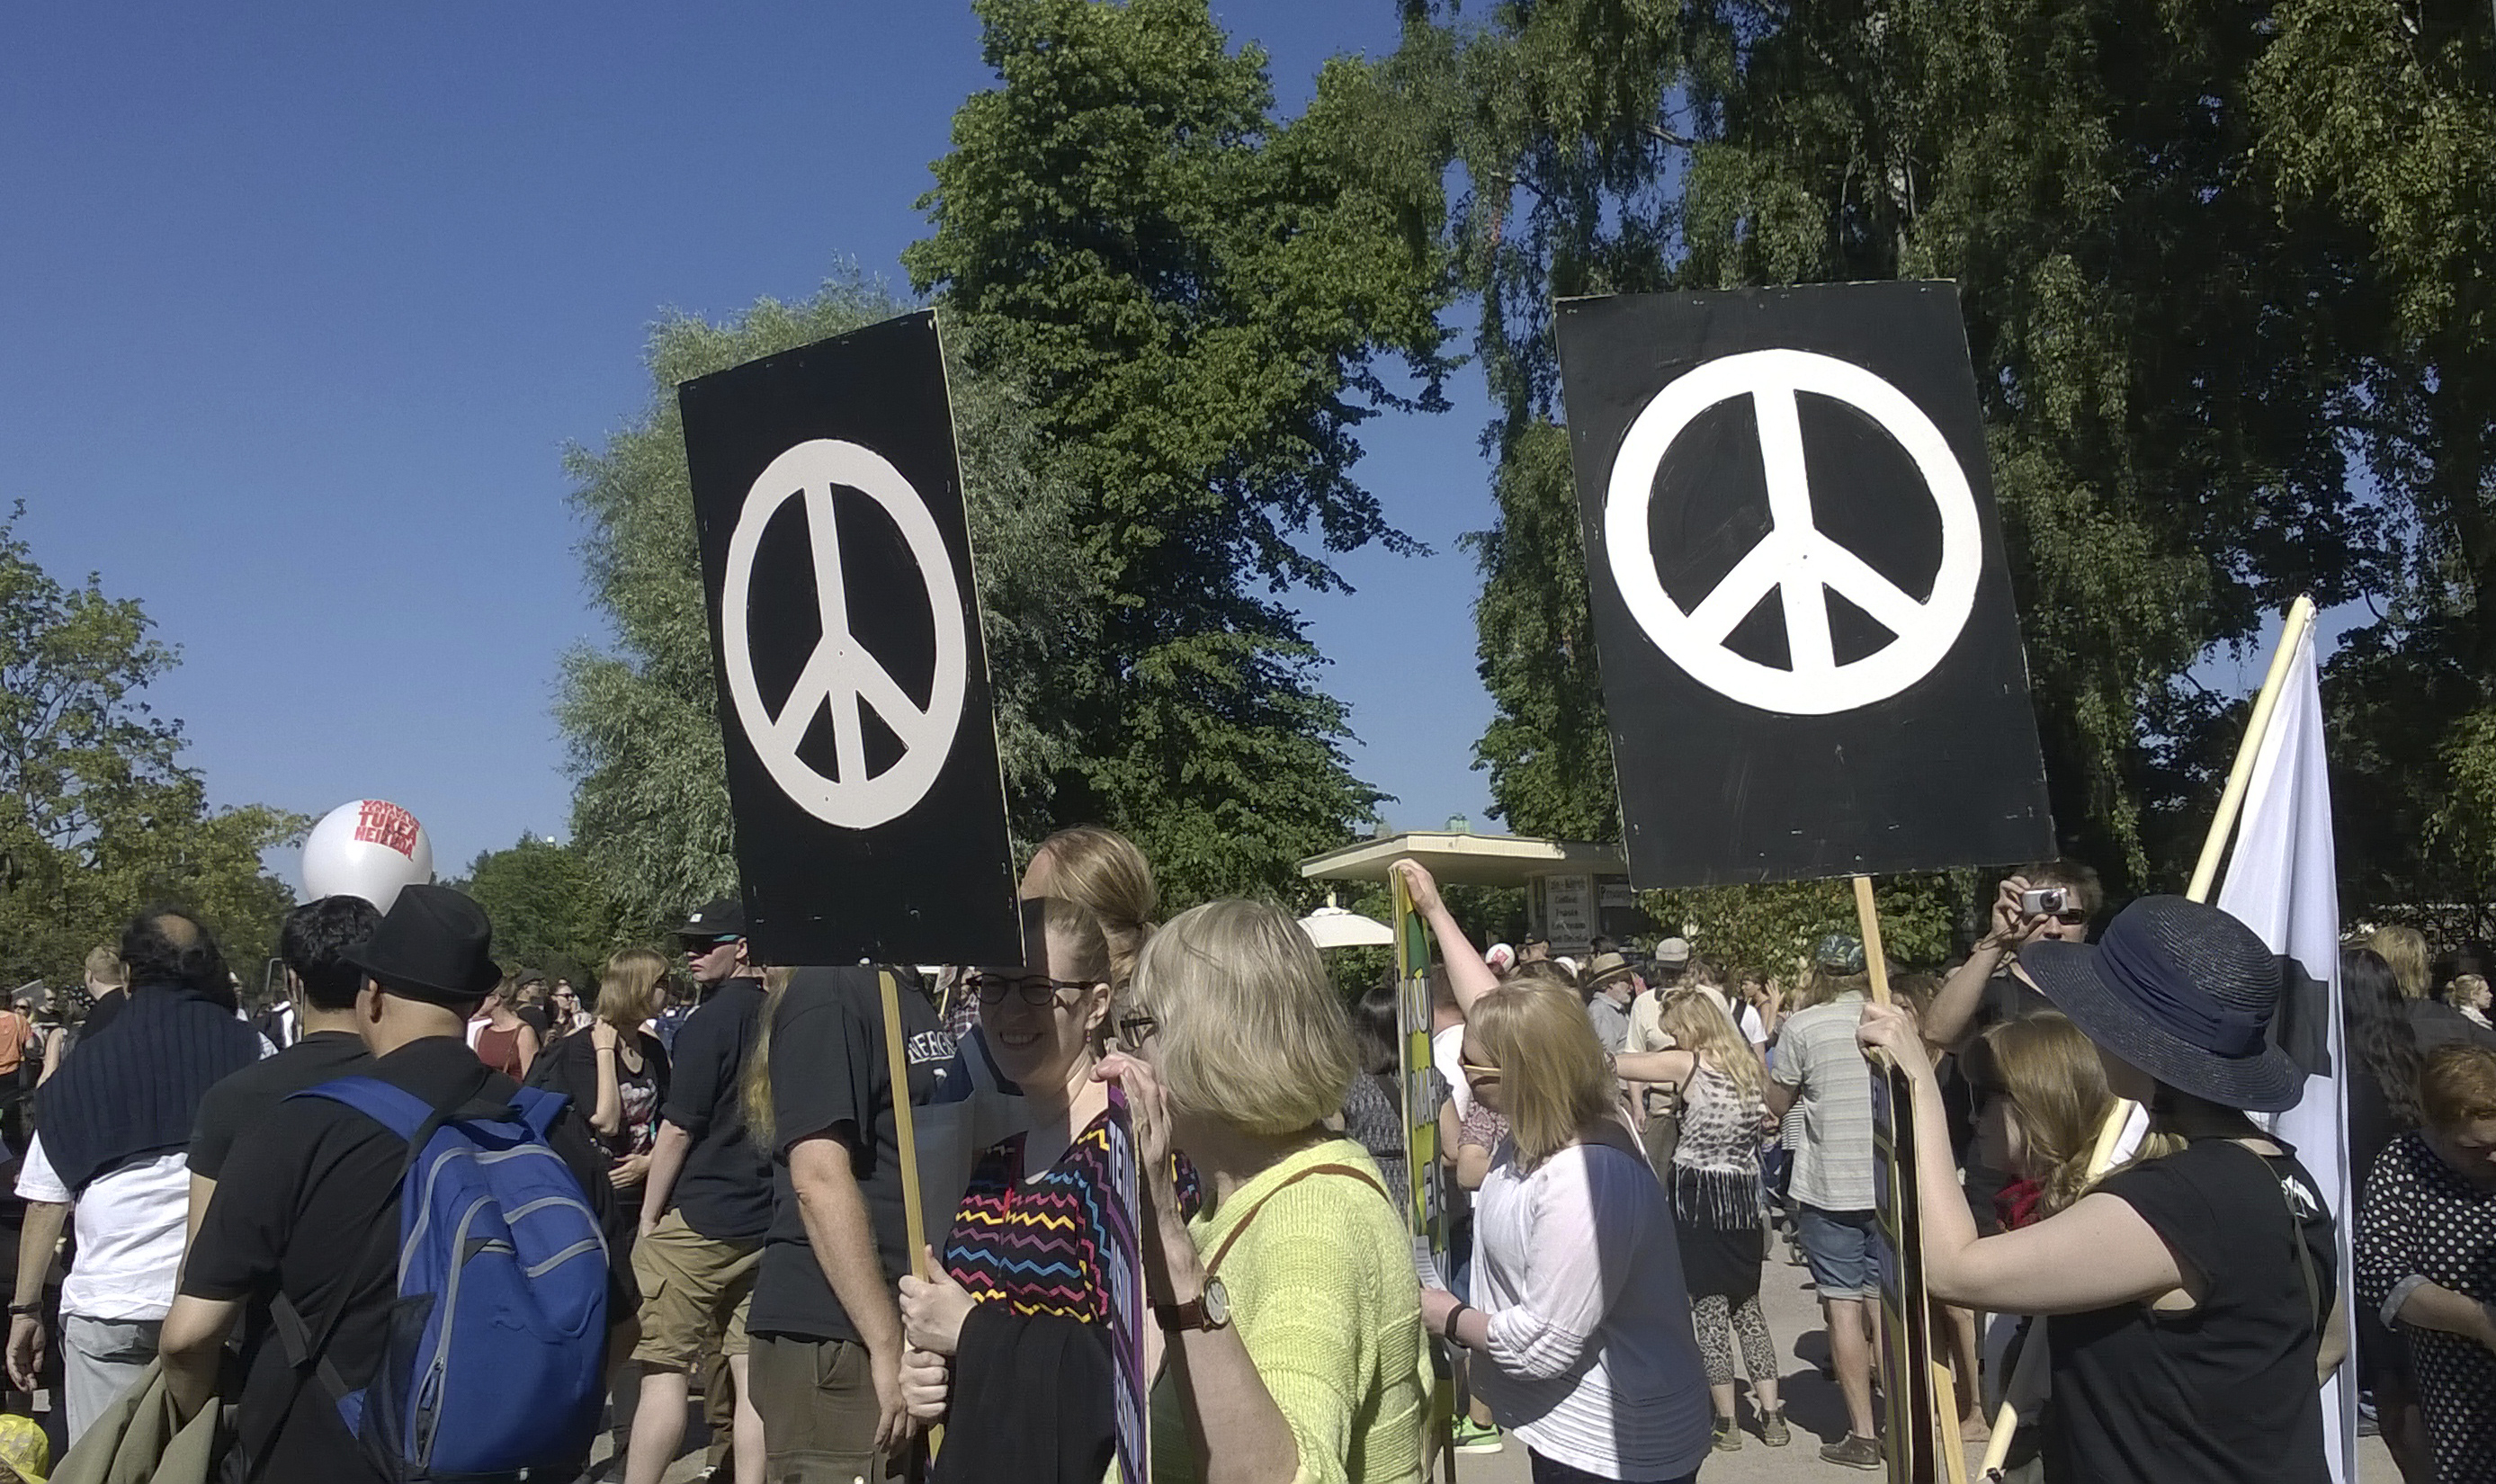 People in a demonstration with banners inclufing the peace sign.